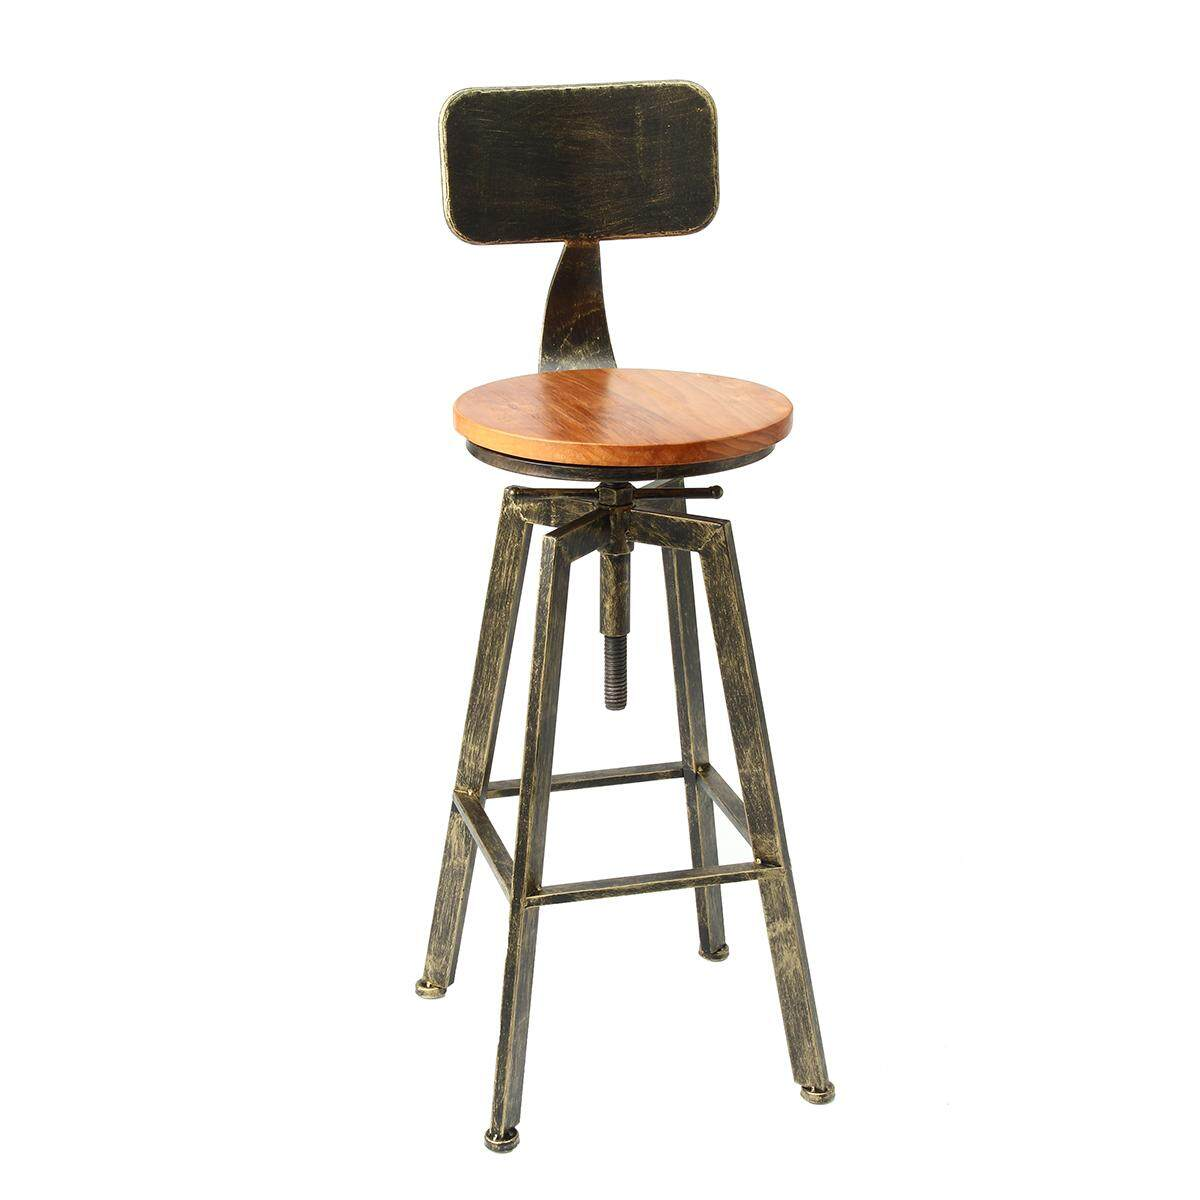 iron bar chairs solid wood bar stool retro industrial design rotating lift high chair dining bronze - intl